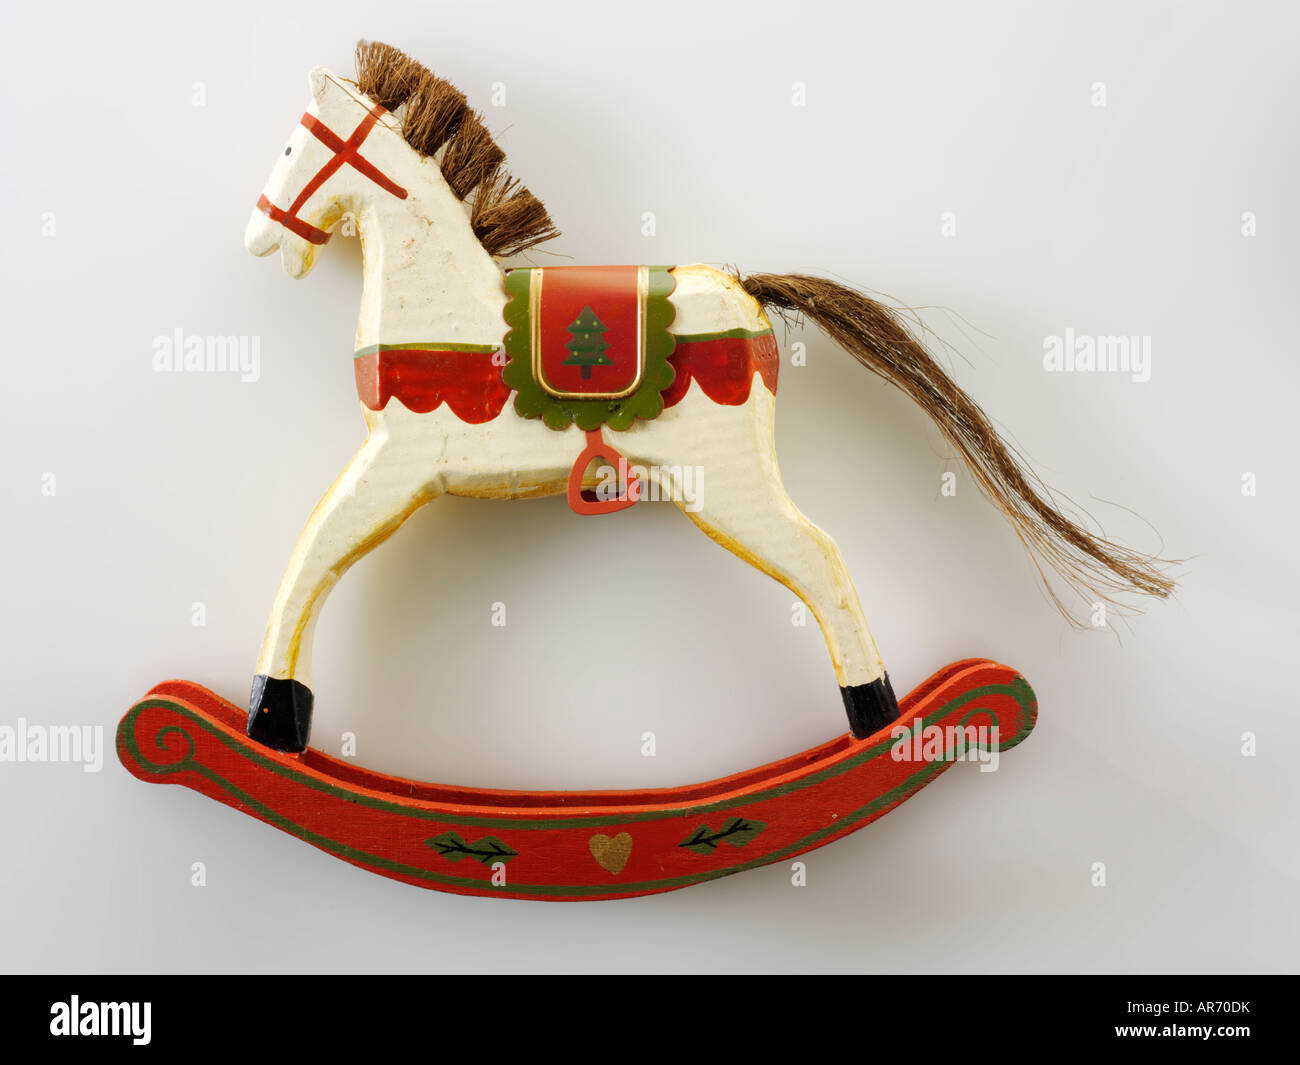 Rocking Horse Christmas High Resolution Stock Photography And Images Alamy